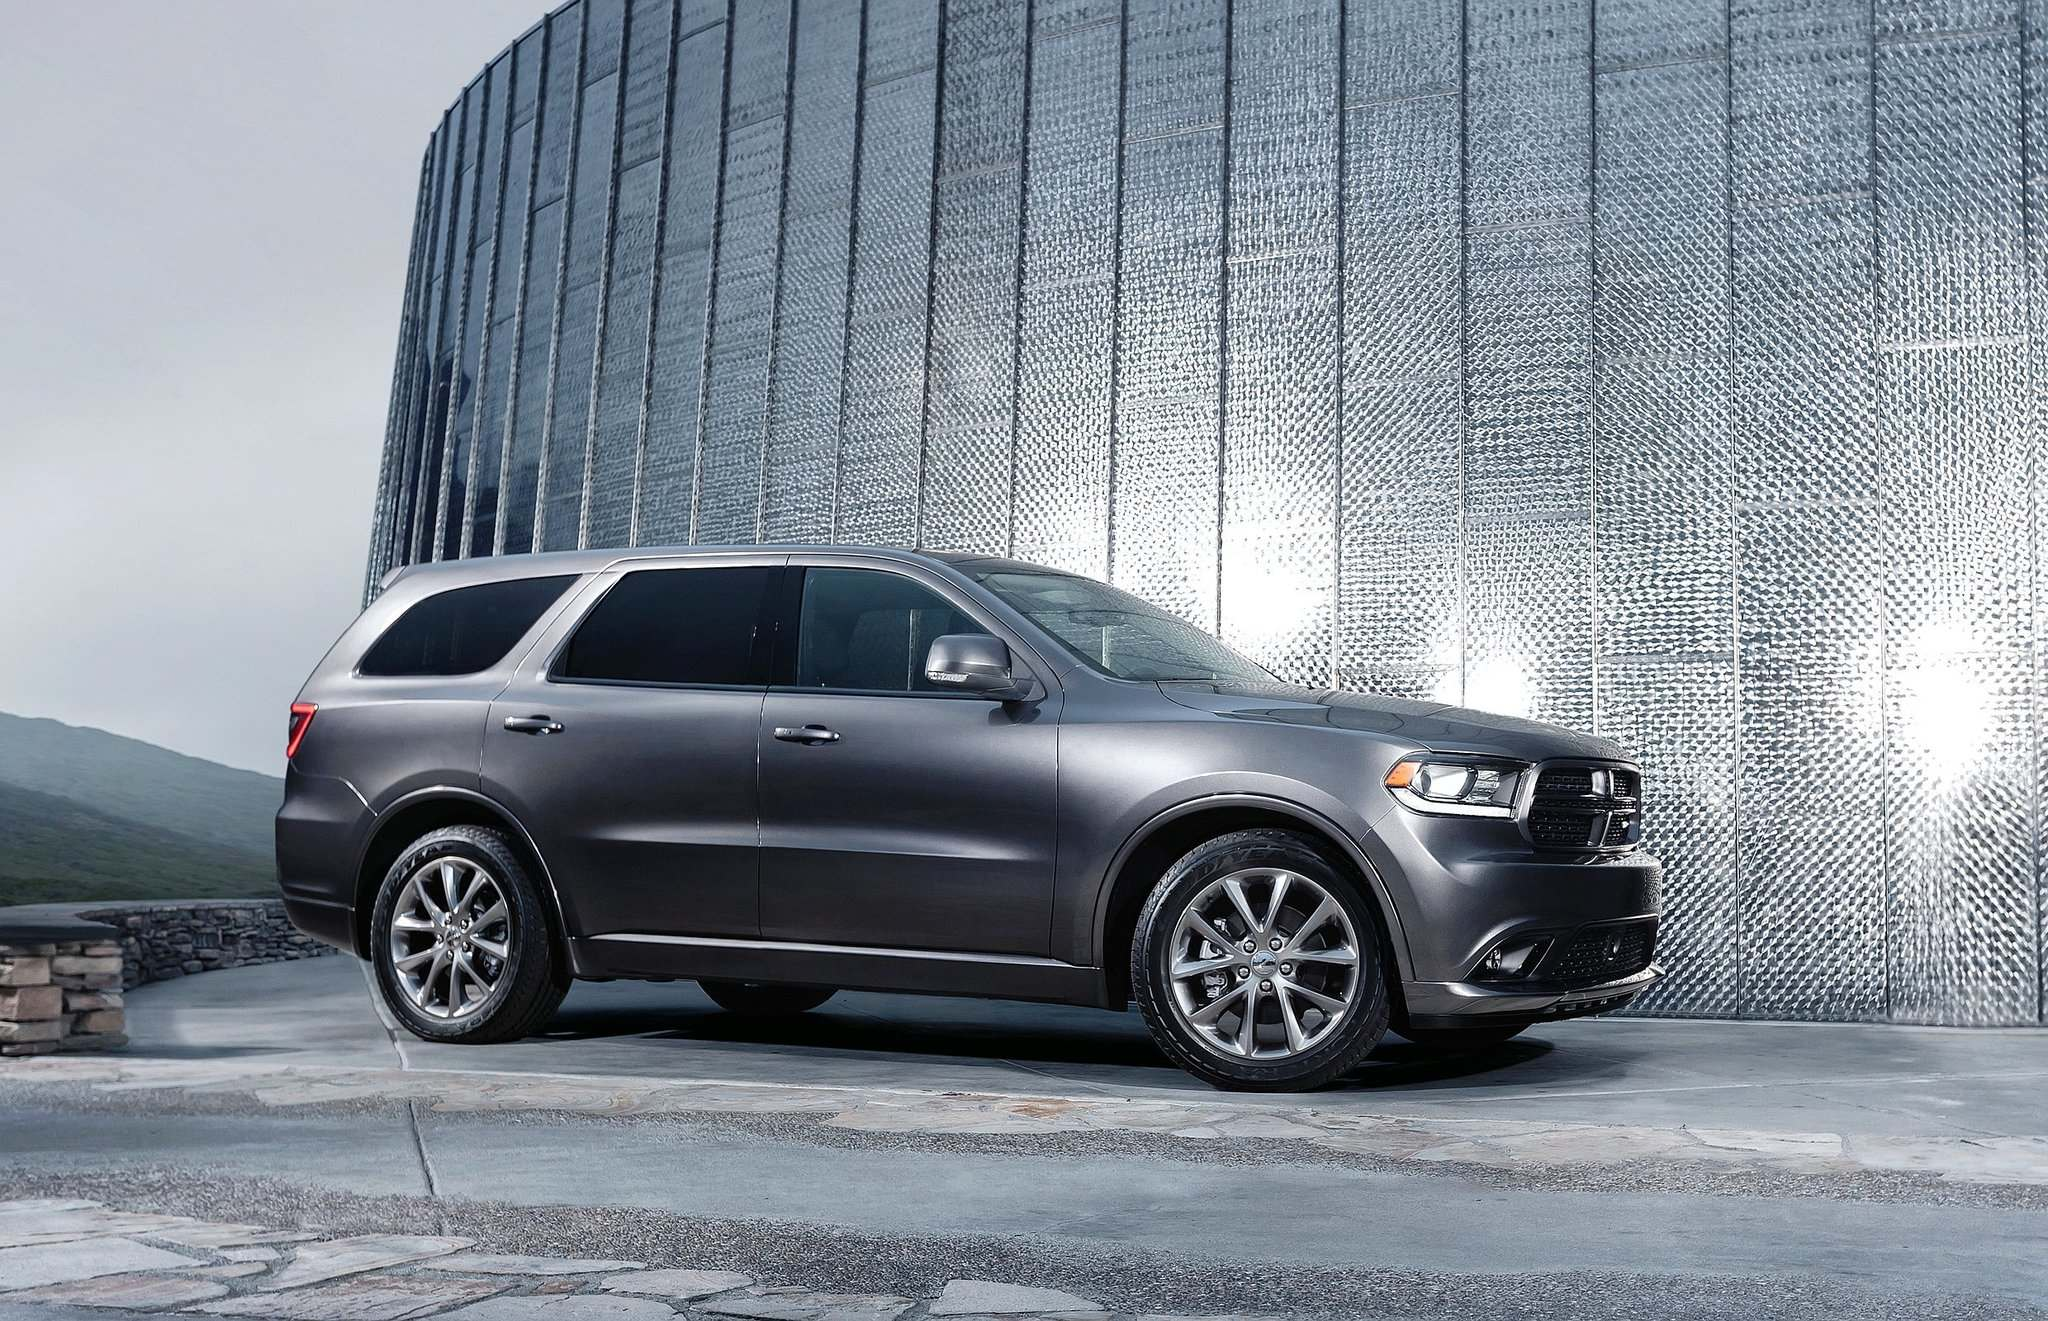 The Dodge Durango SRT will reportedly feature the same 6.4-litre V-8 engine found in the Jeep Grand Cherokee SRT, delivering 475 horsepower.